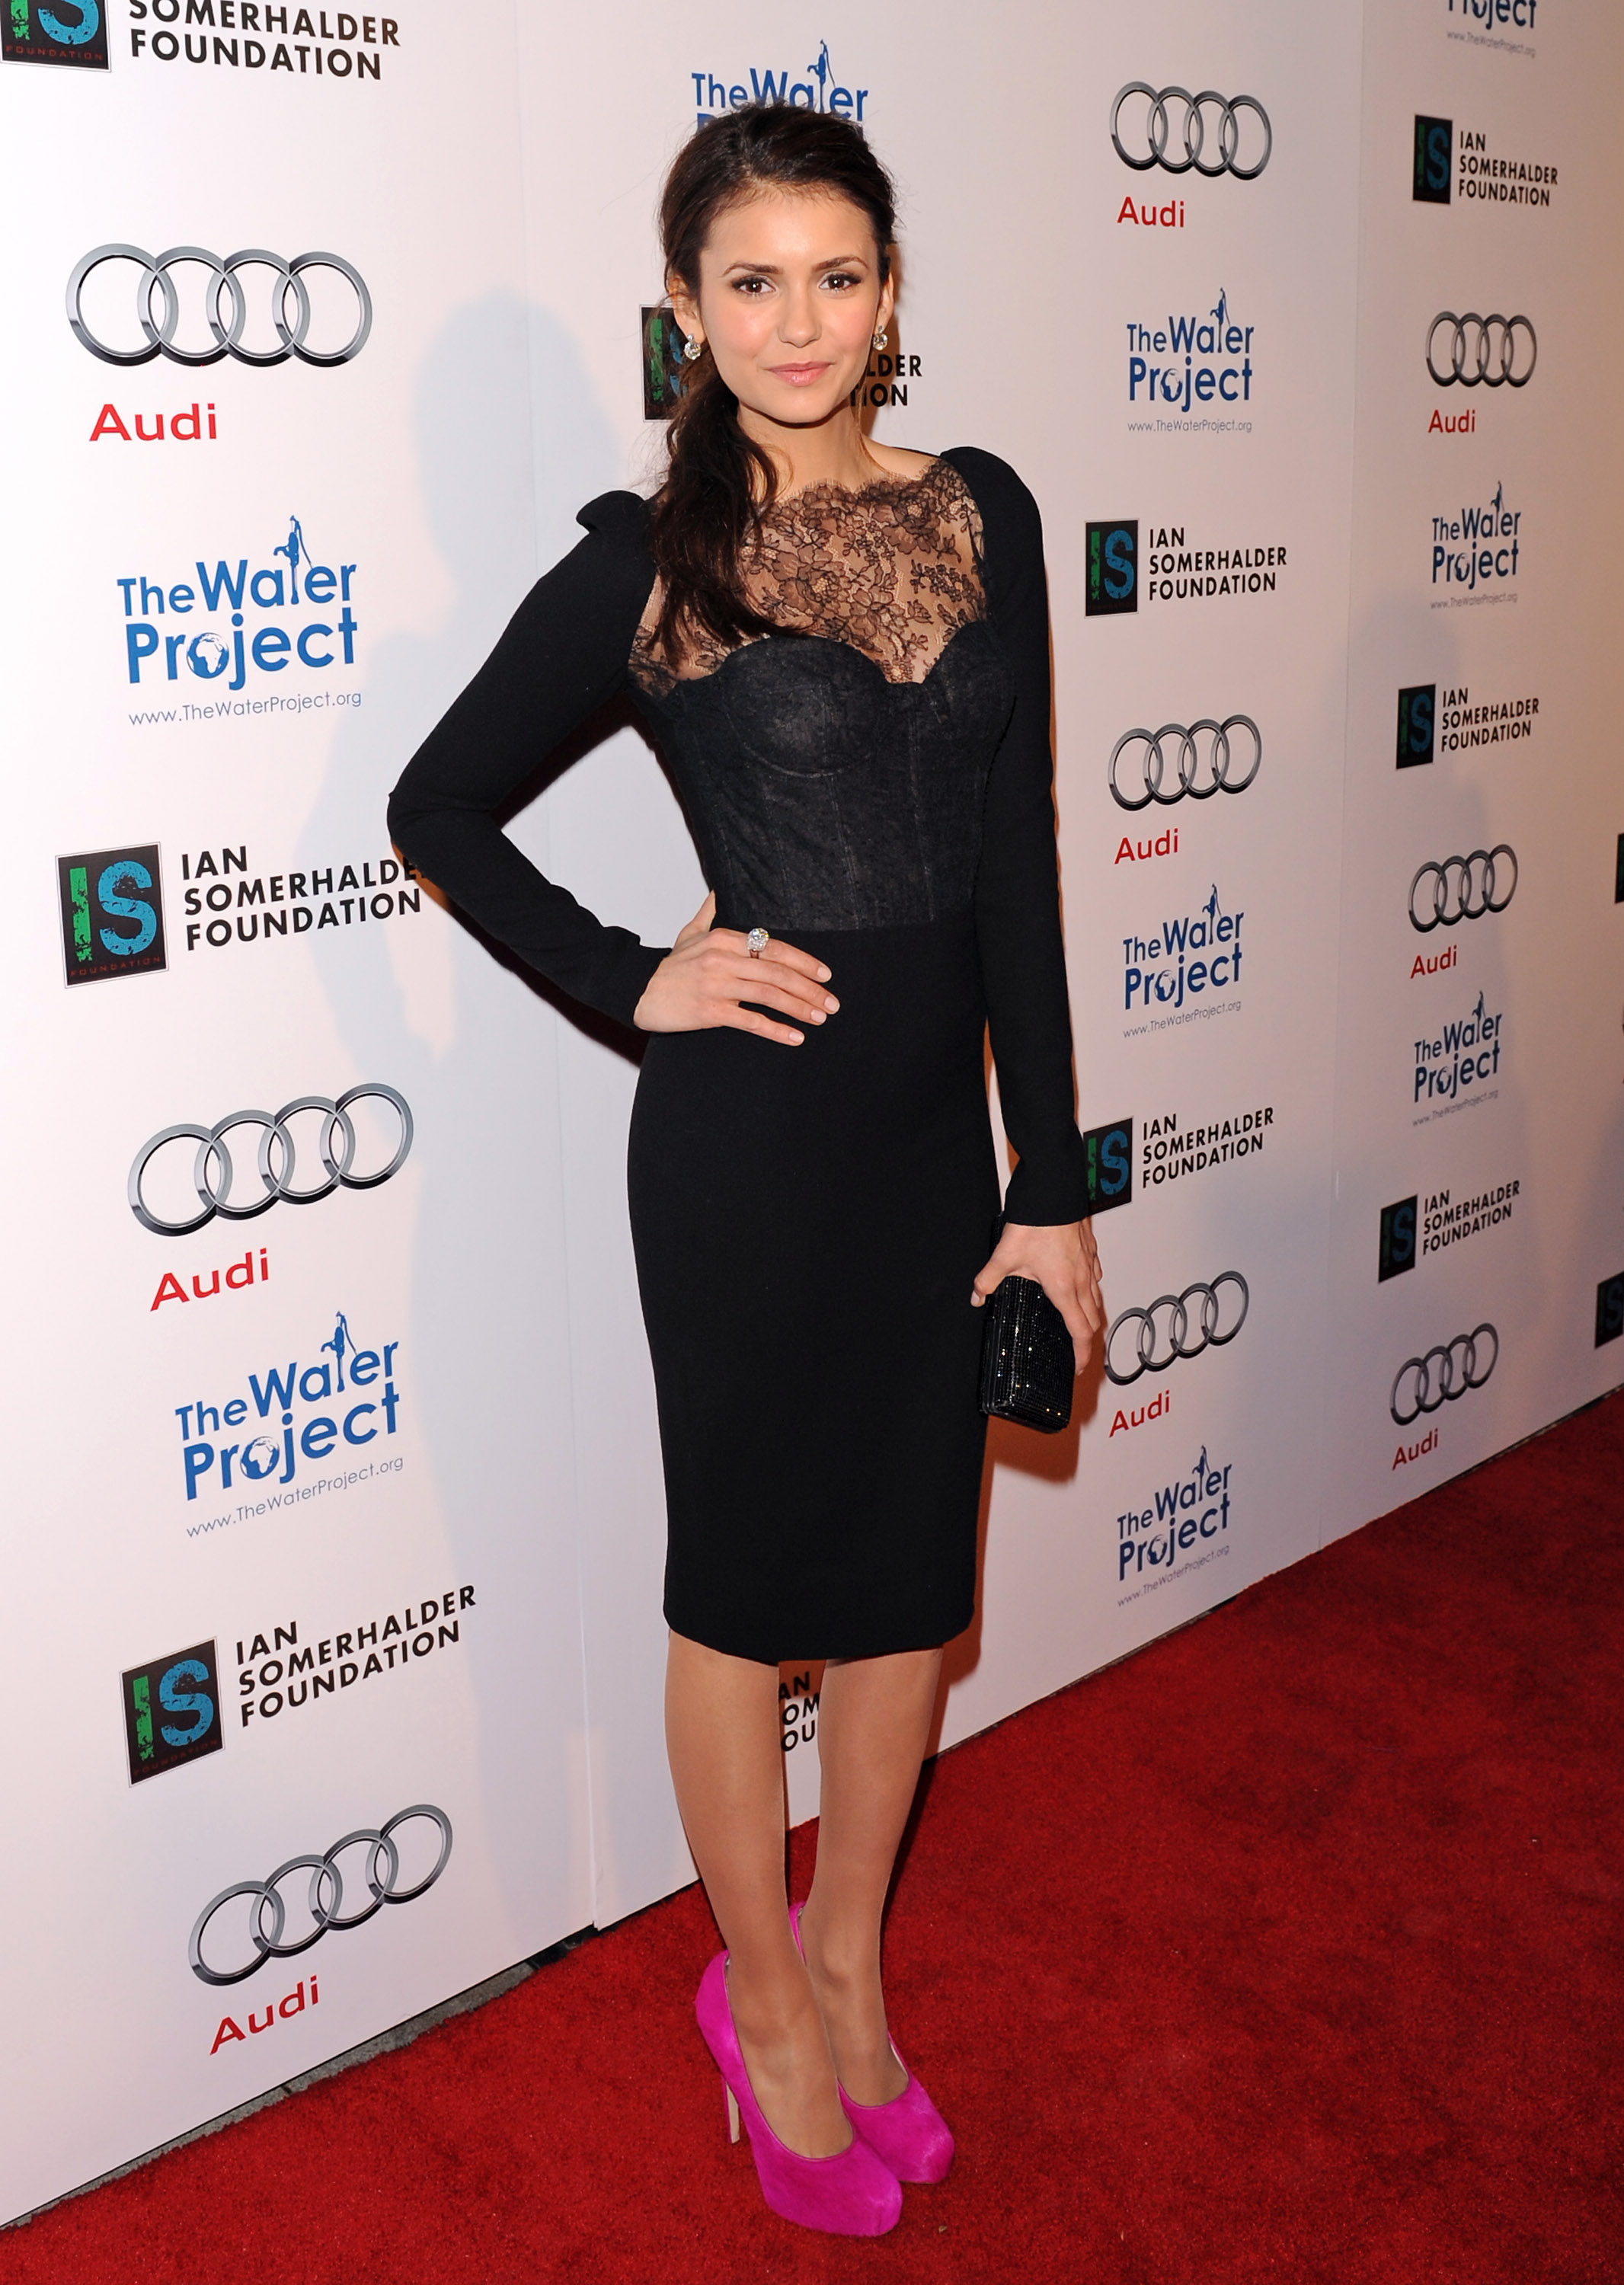 Once again, Nina accented her lace-infused black Monique Lhuillier sheath at The Ripple Effect charity event in 2012 with a bold pair of pink pumps.